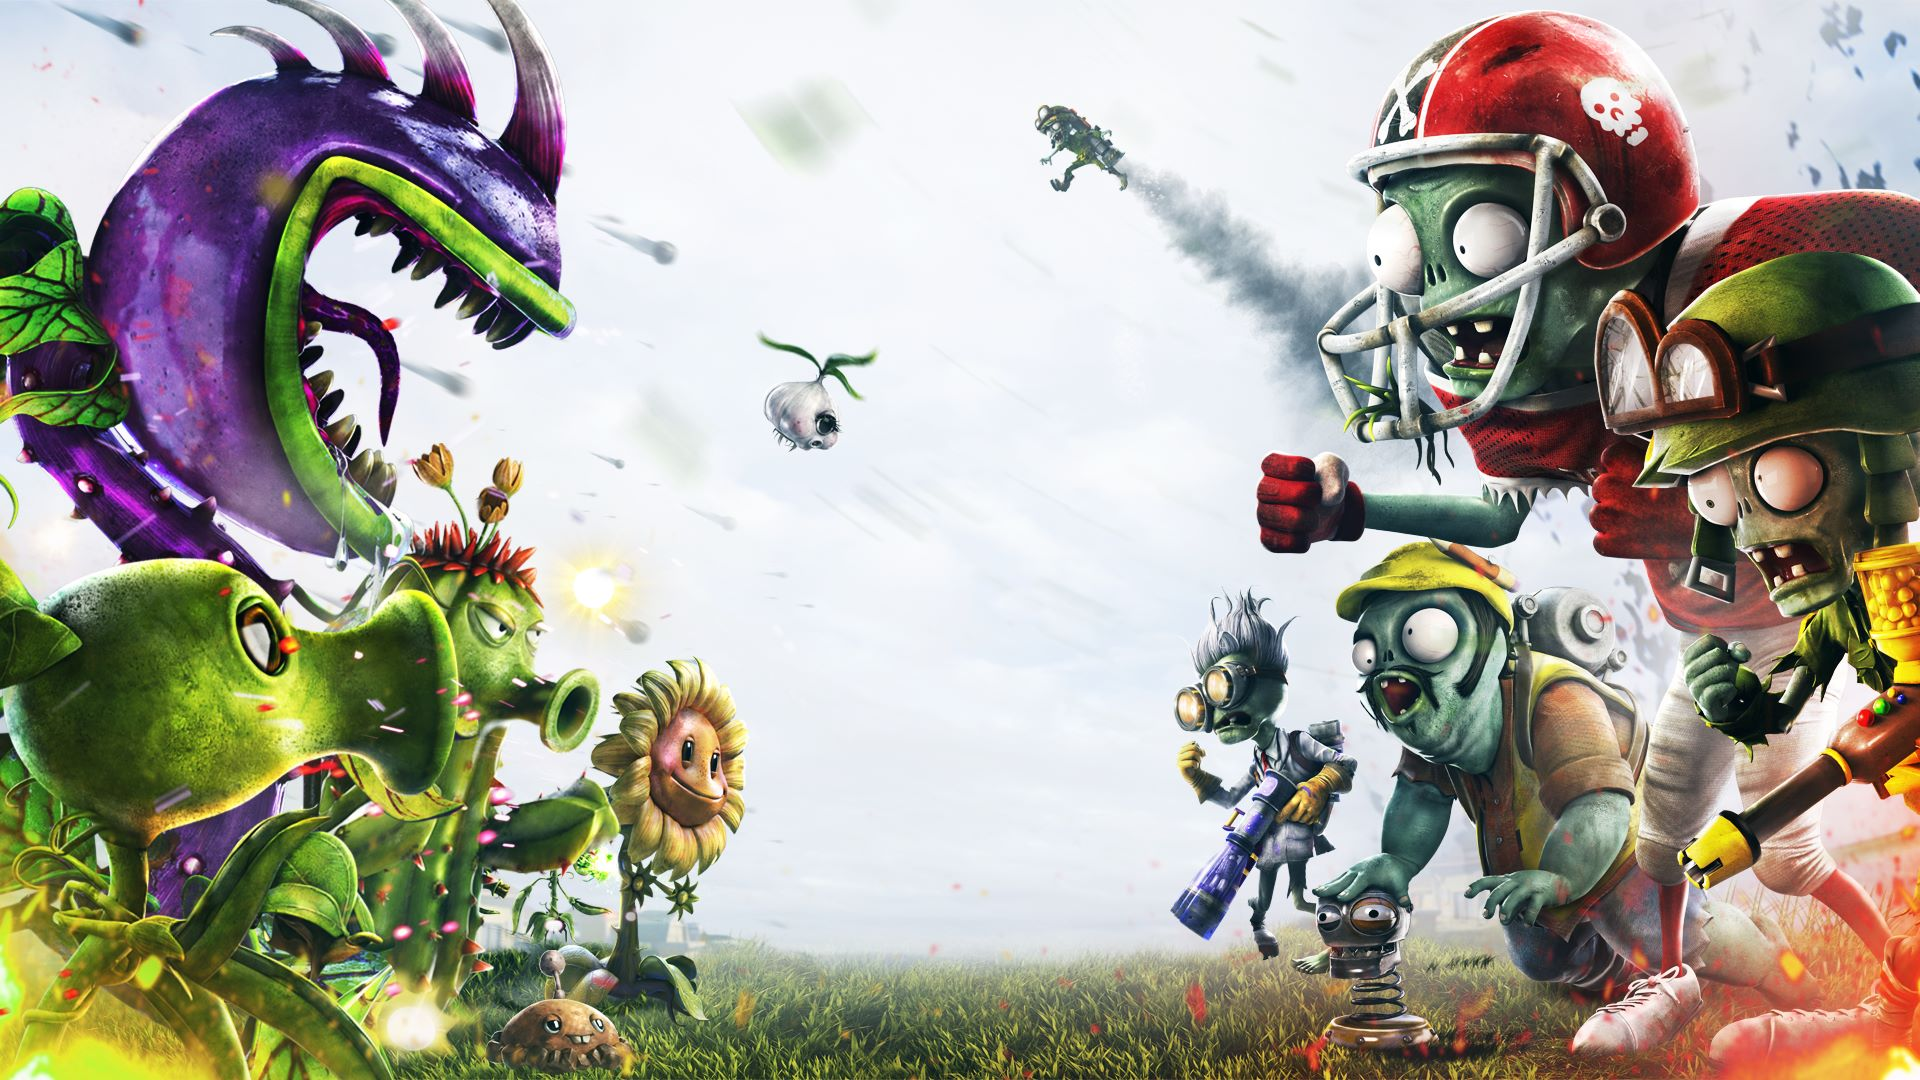 EA sending out alpha invites for new Plants vs. Zombies shooter